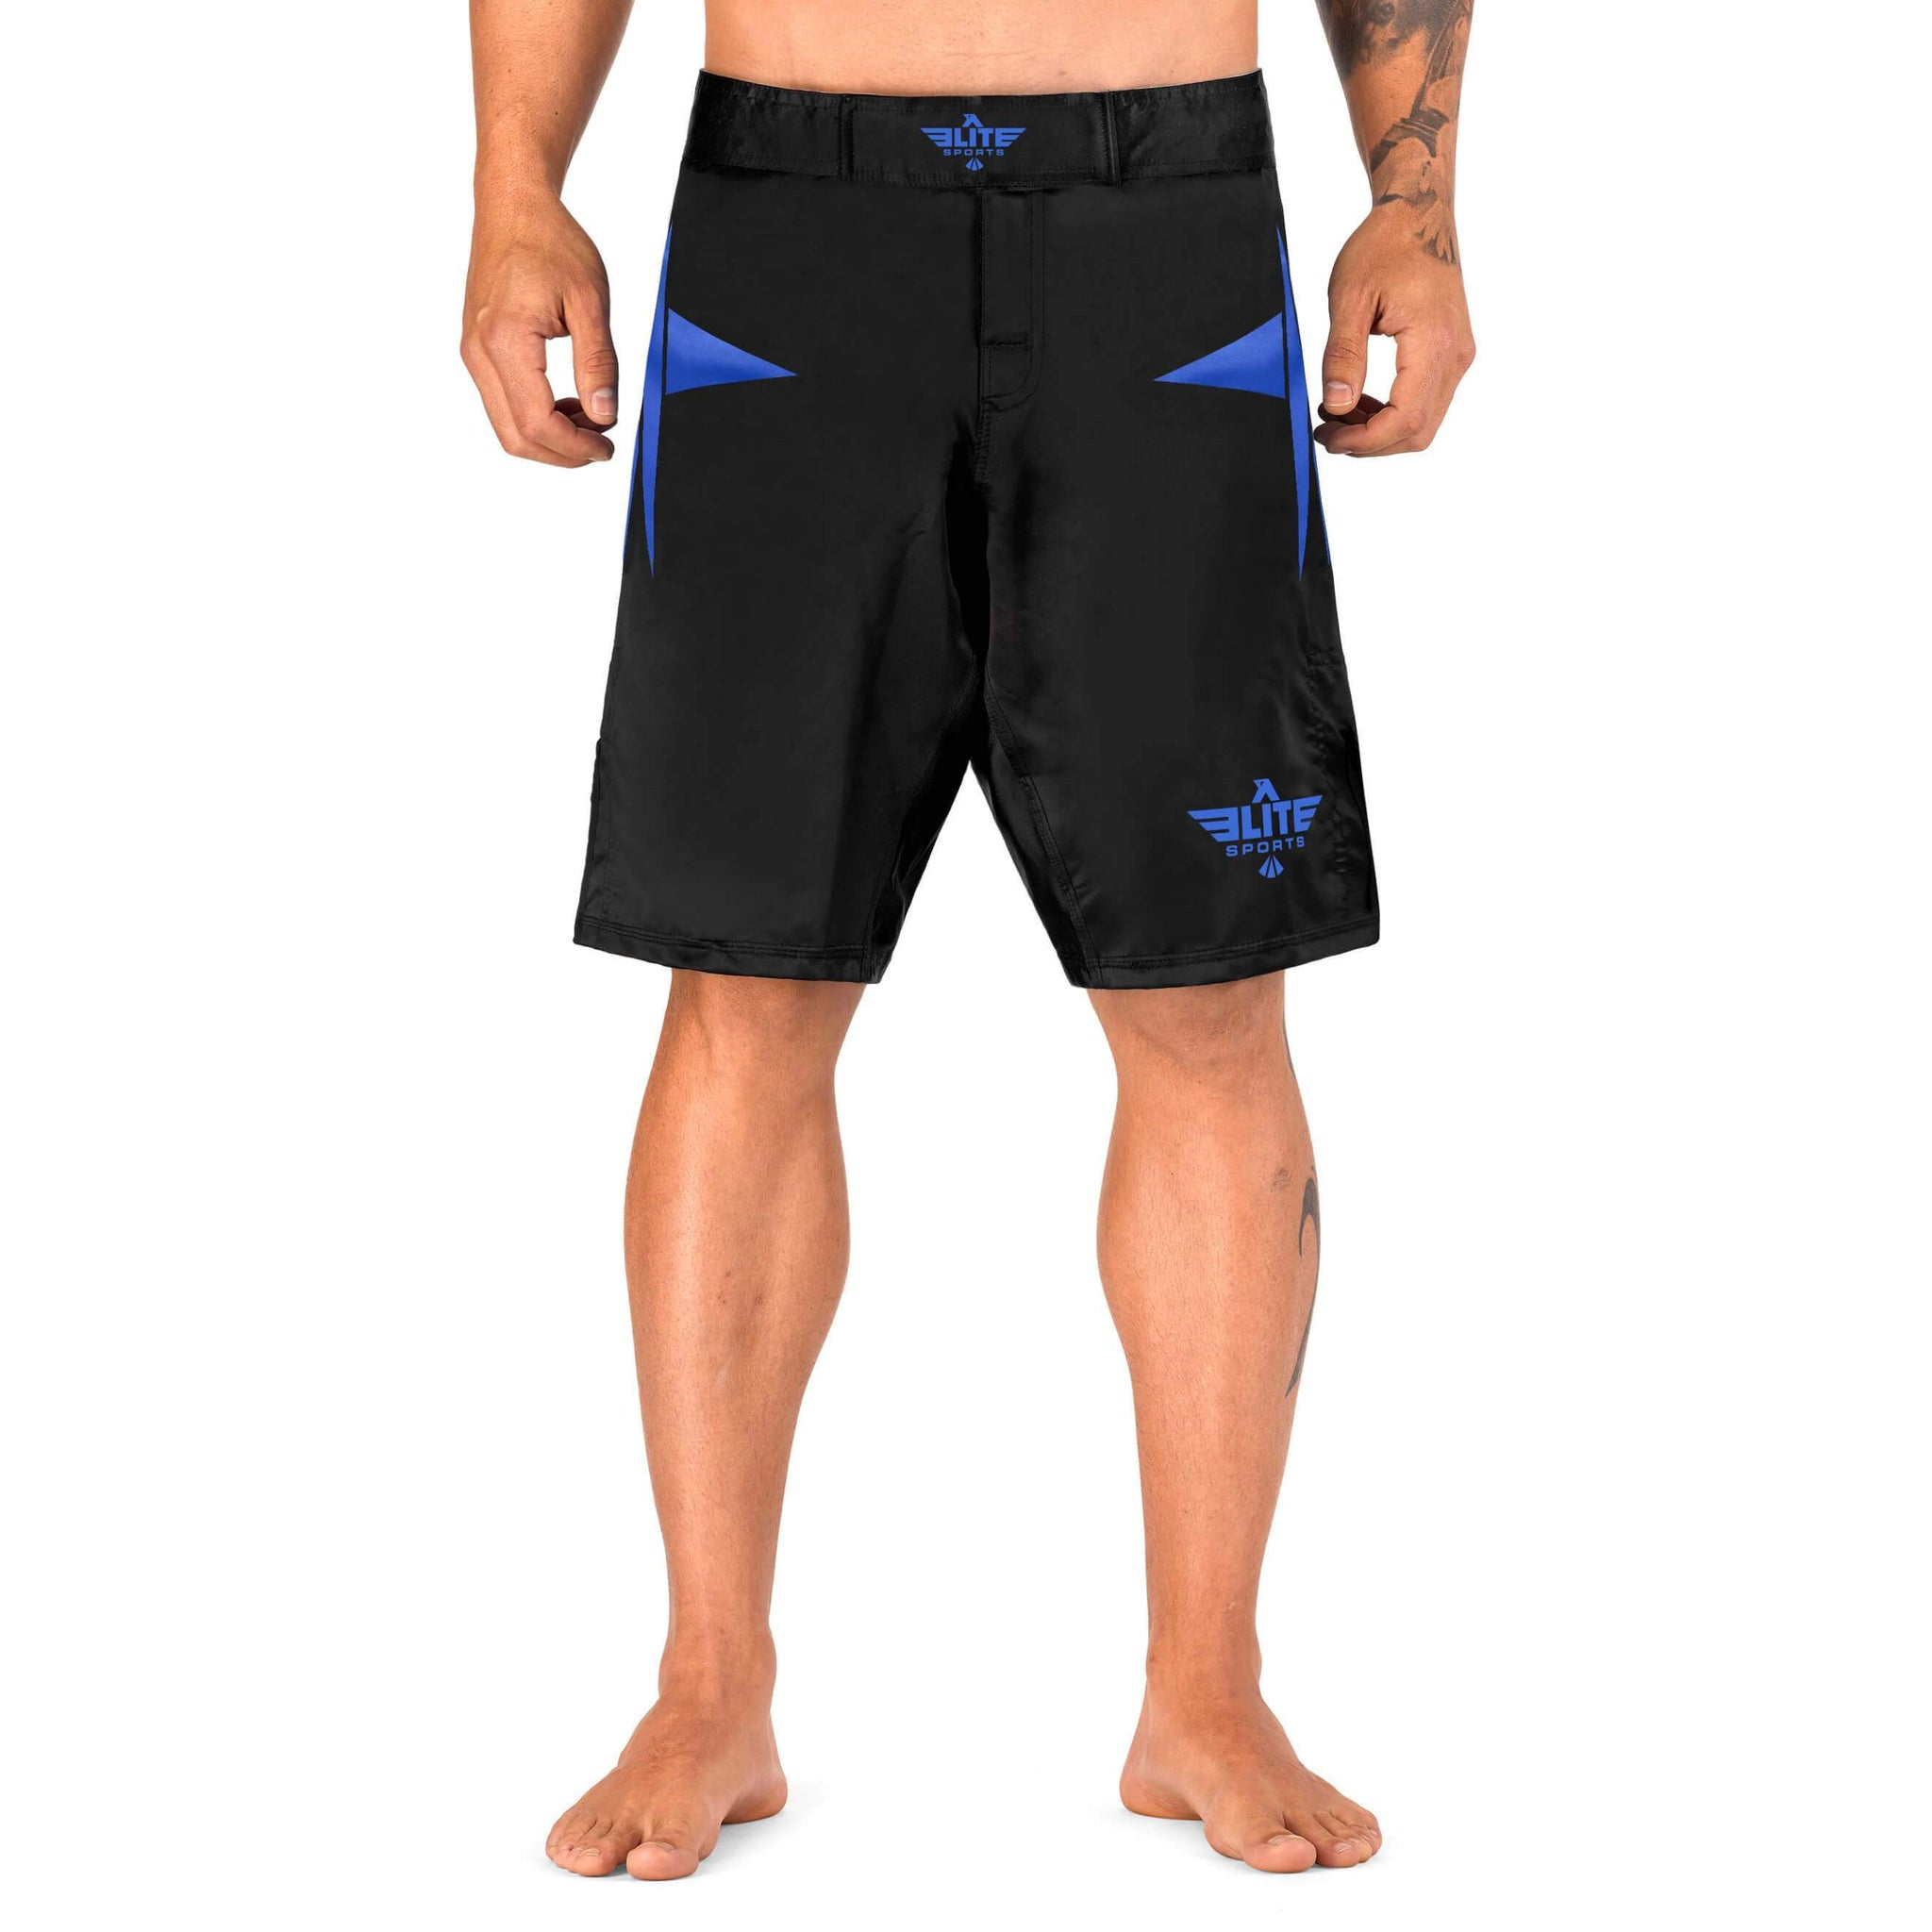 Load image into Gallery viewer, Elite Sports Star Series Sublimation Black/Blue Brazilian Jiu Jitsu BJJ No Gi Shorts